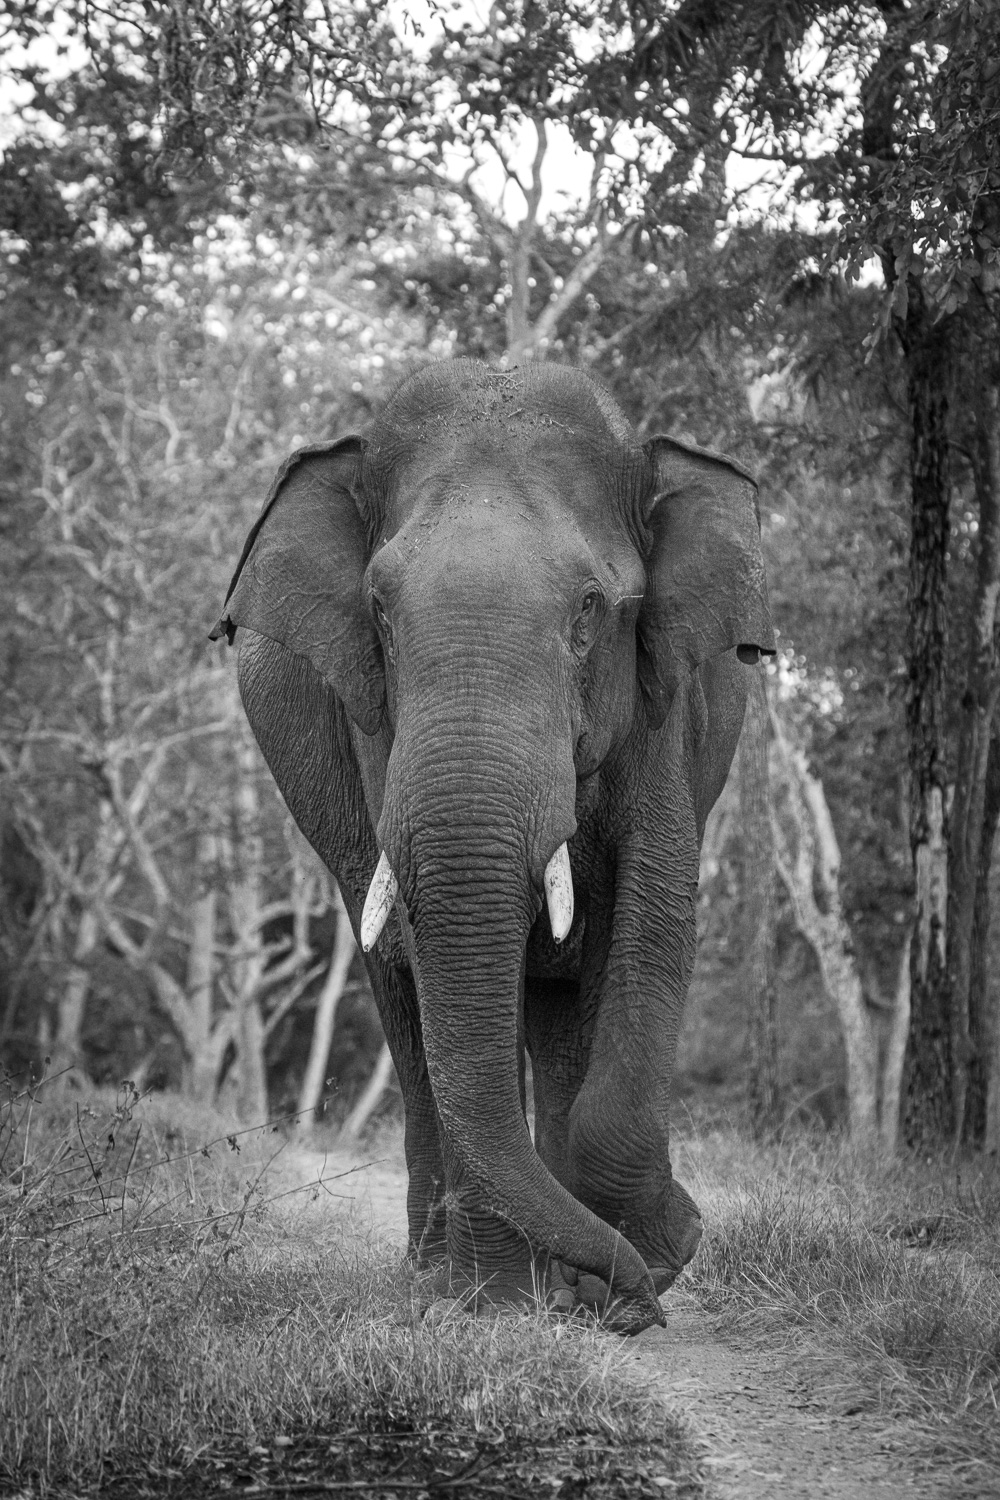 Black and white photo of an elephant walking